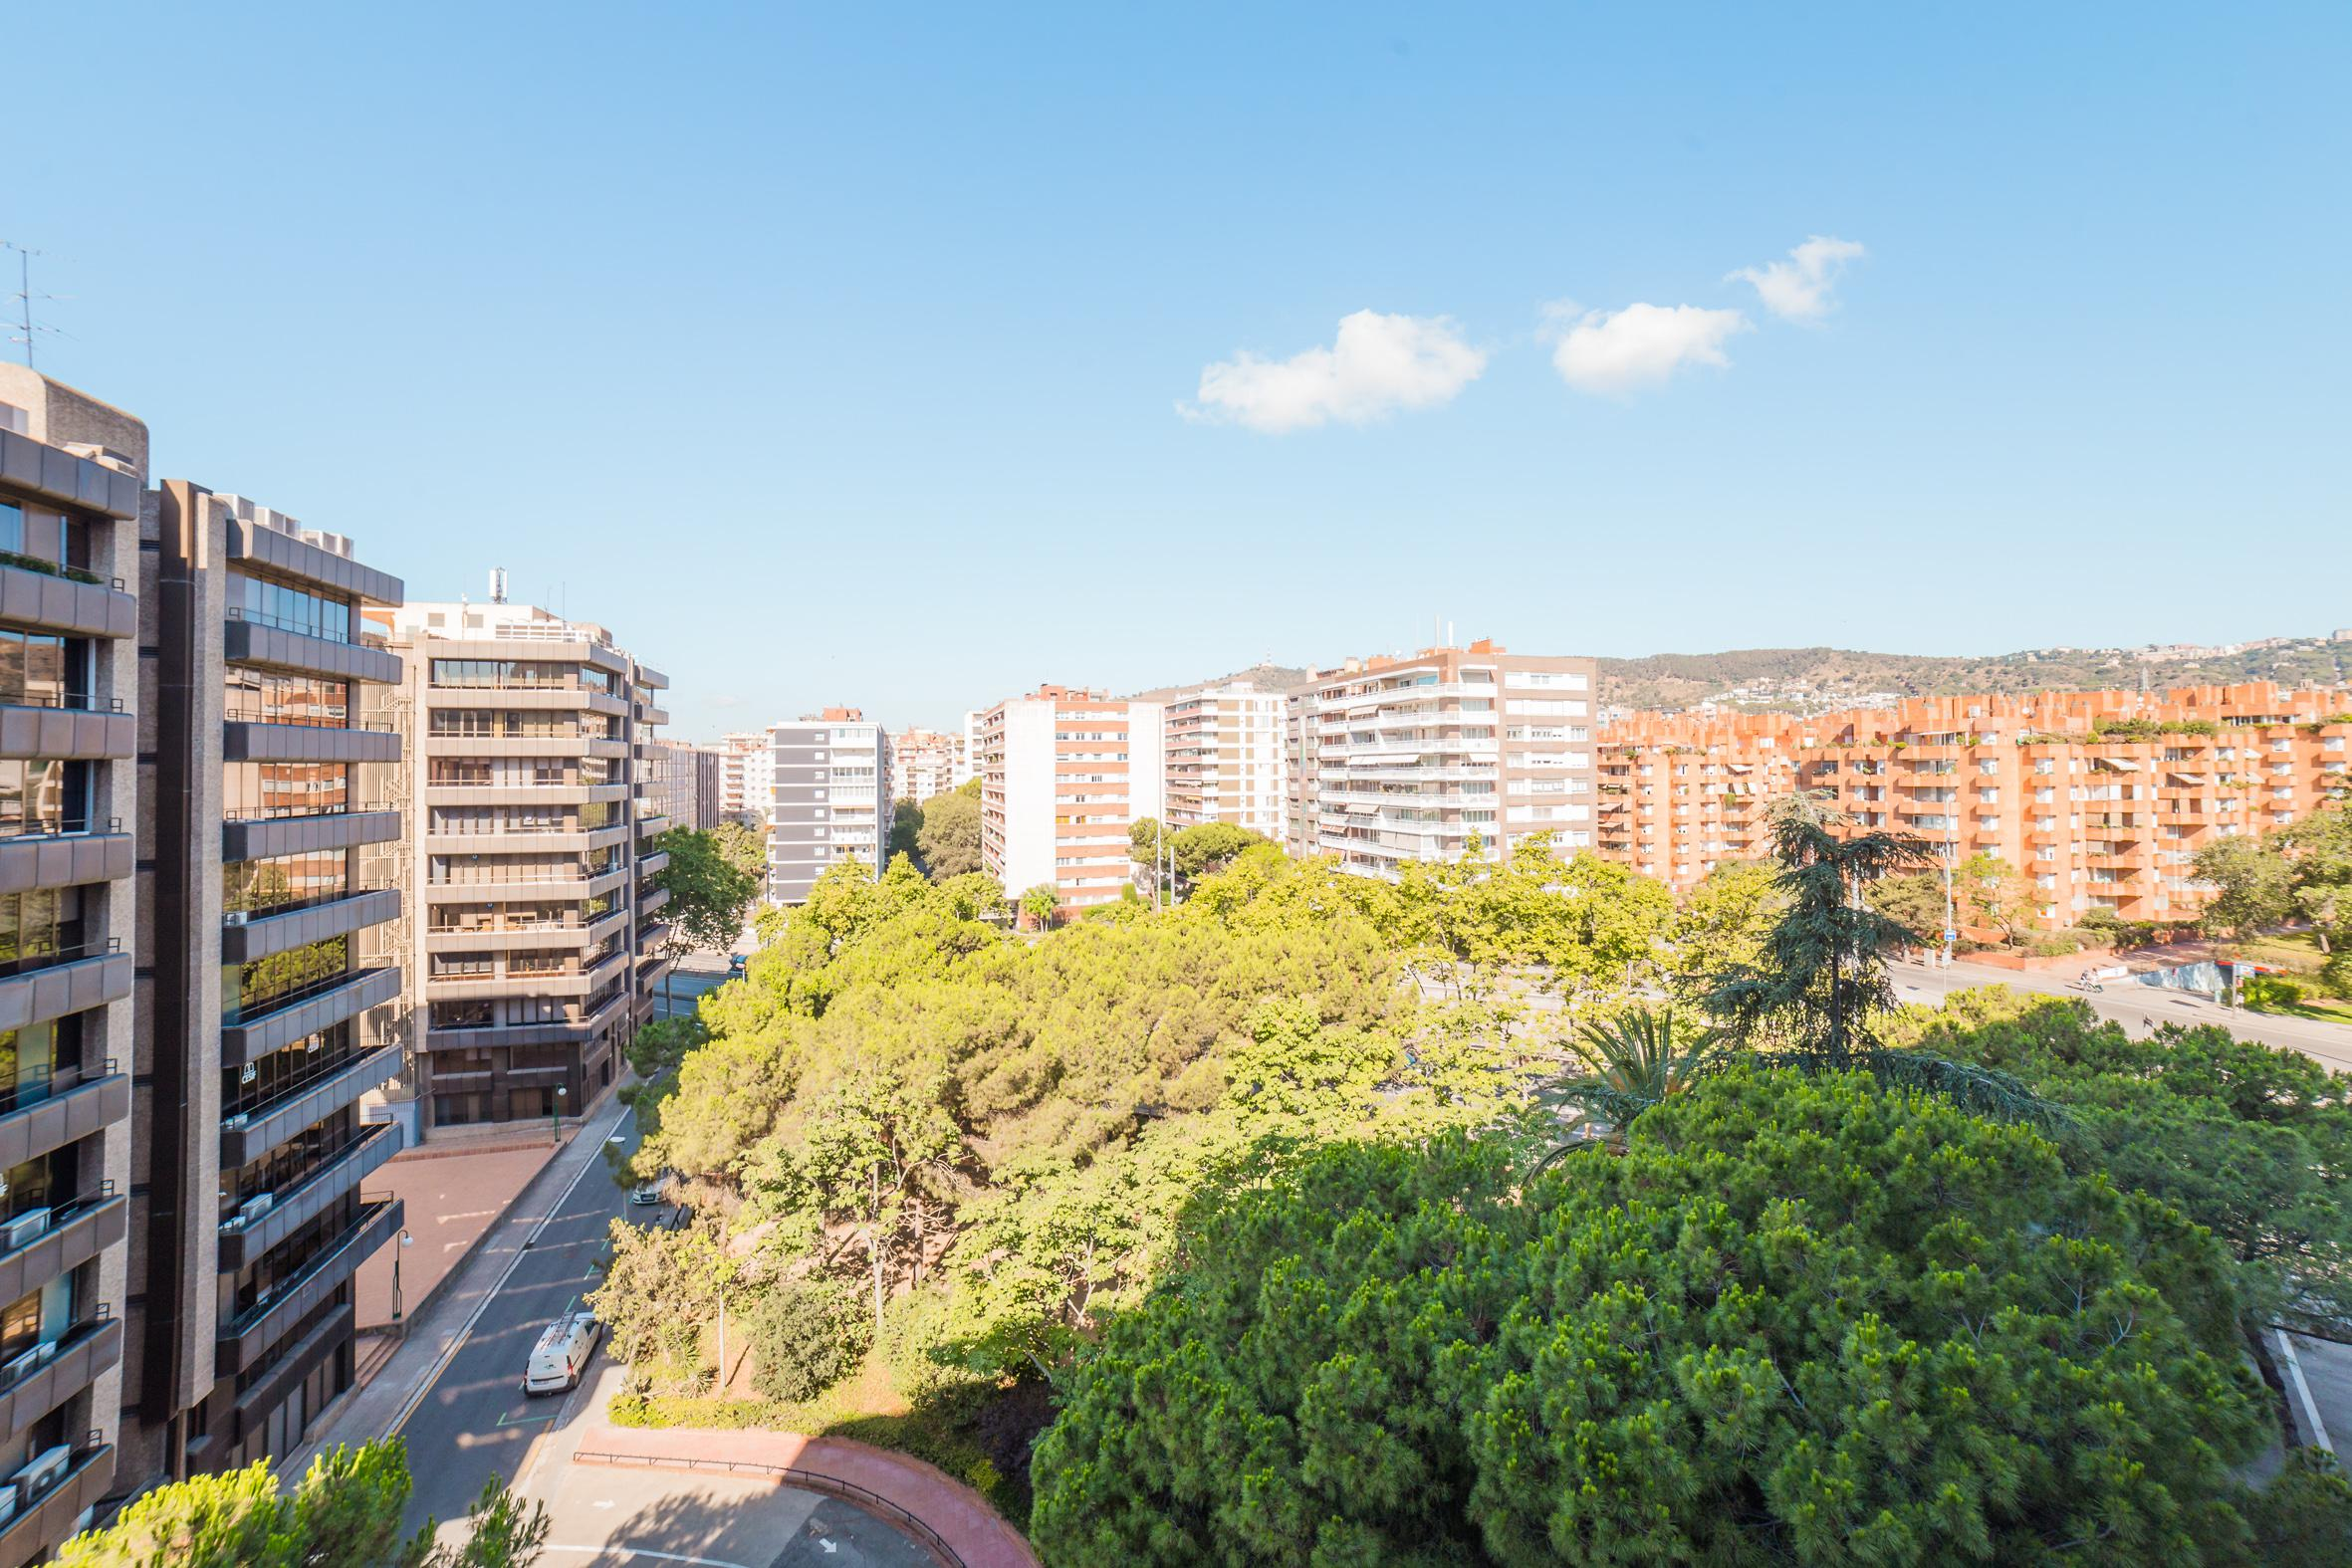 248988 Flat for sale in Les Corts, Les Corts 6